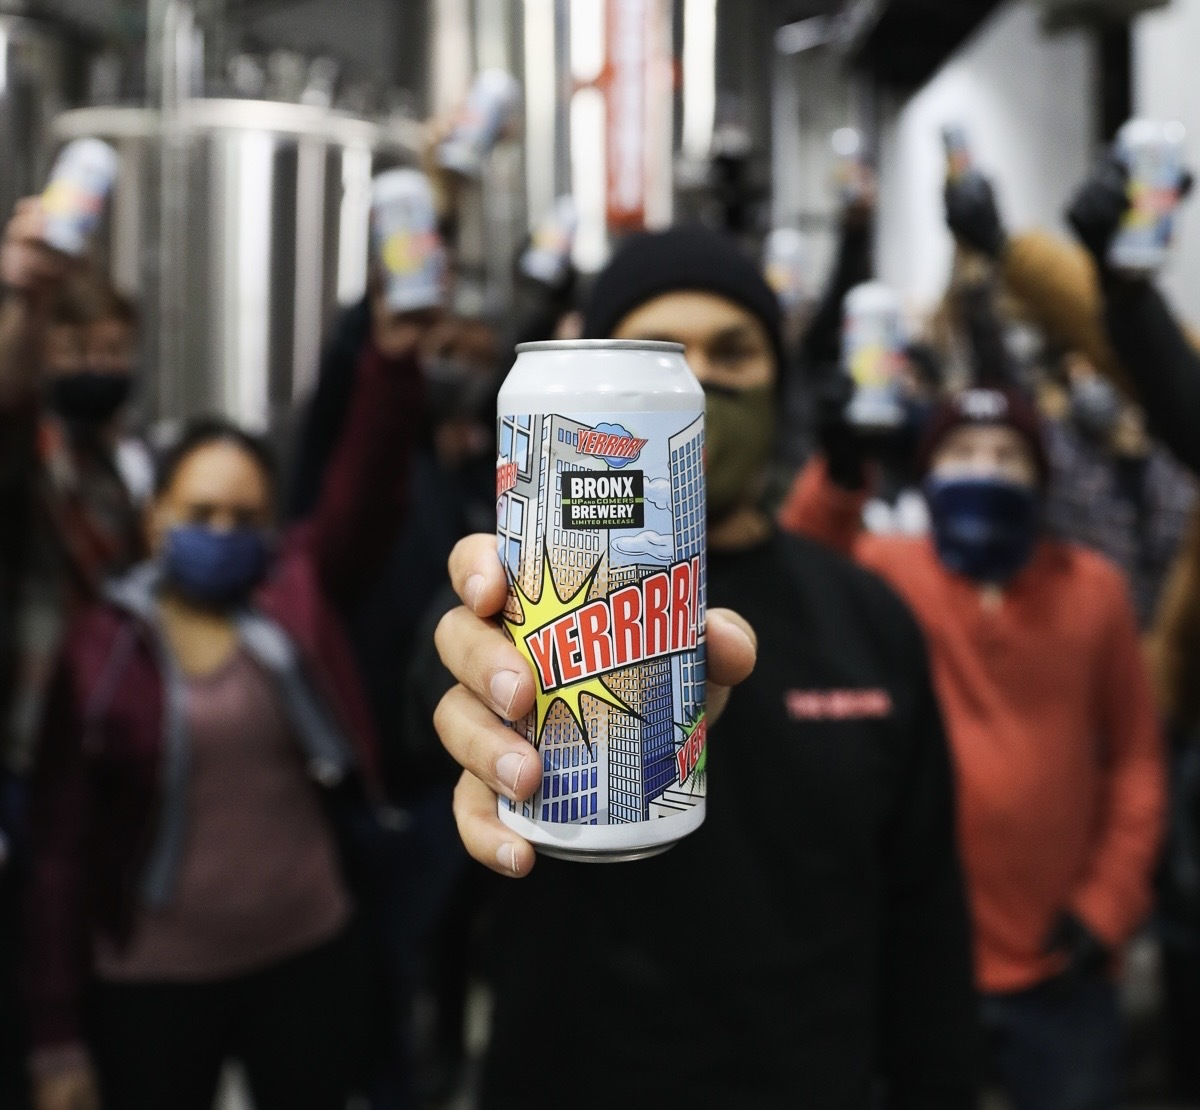 THE BRONX BREWERY AND BEER KULTURE ANNOUNCE NEW INTERNSHIP DESIGNED TO PROMOTE DIVERSITY IN CRAFT BEER